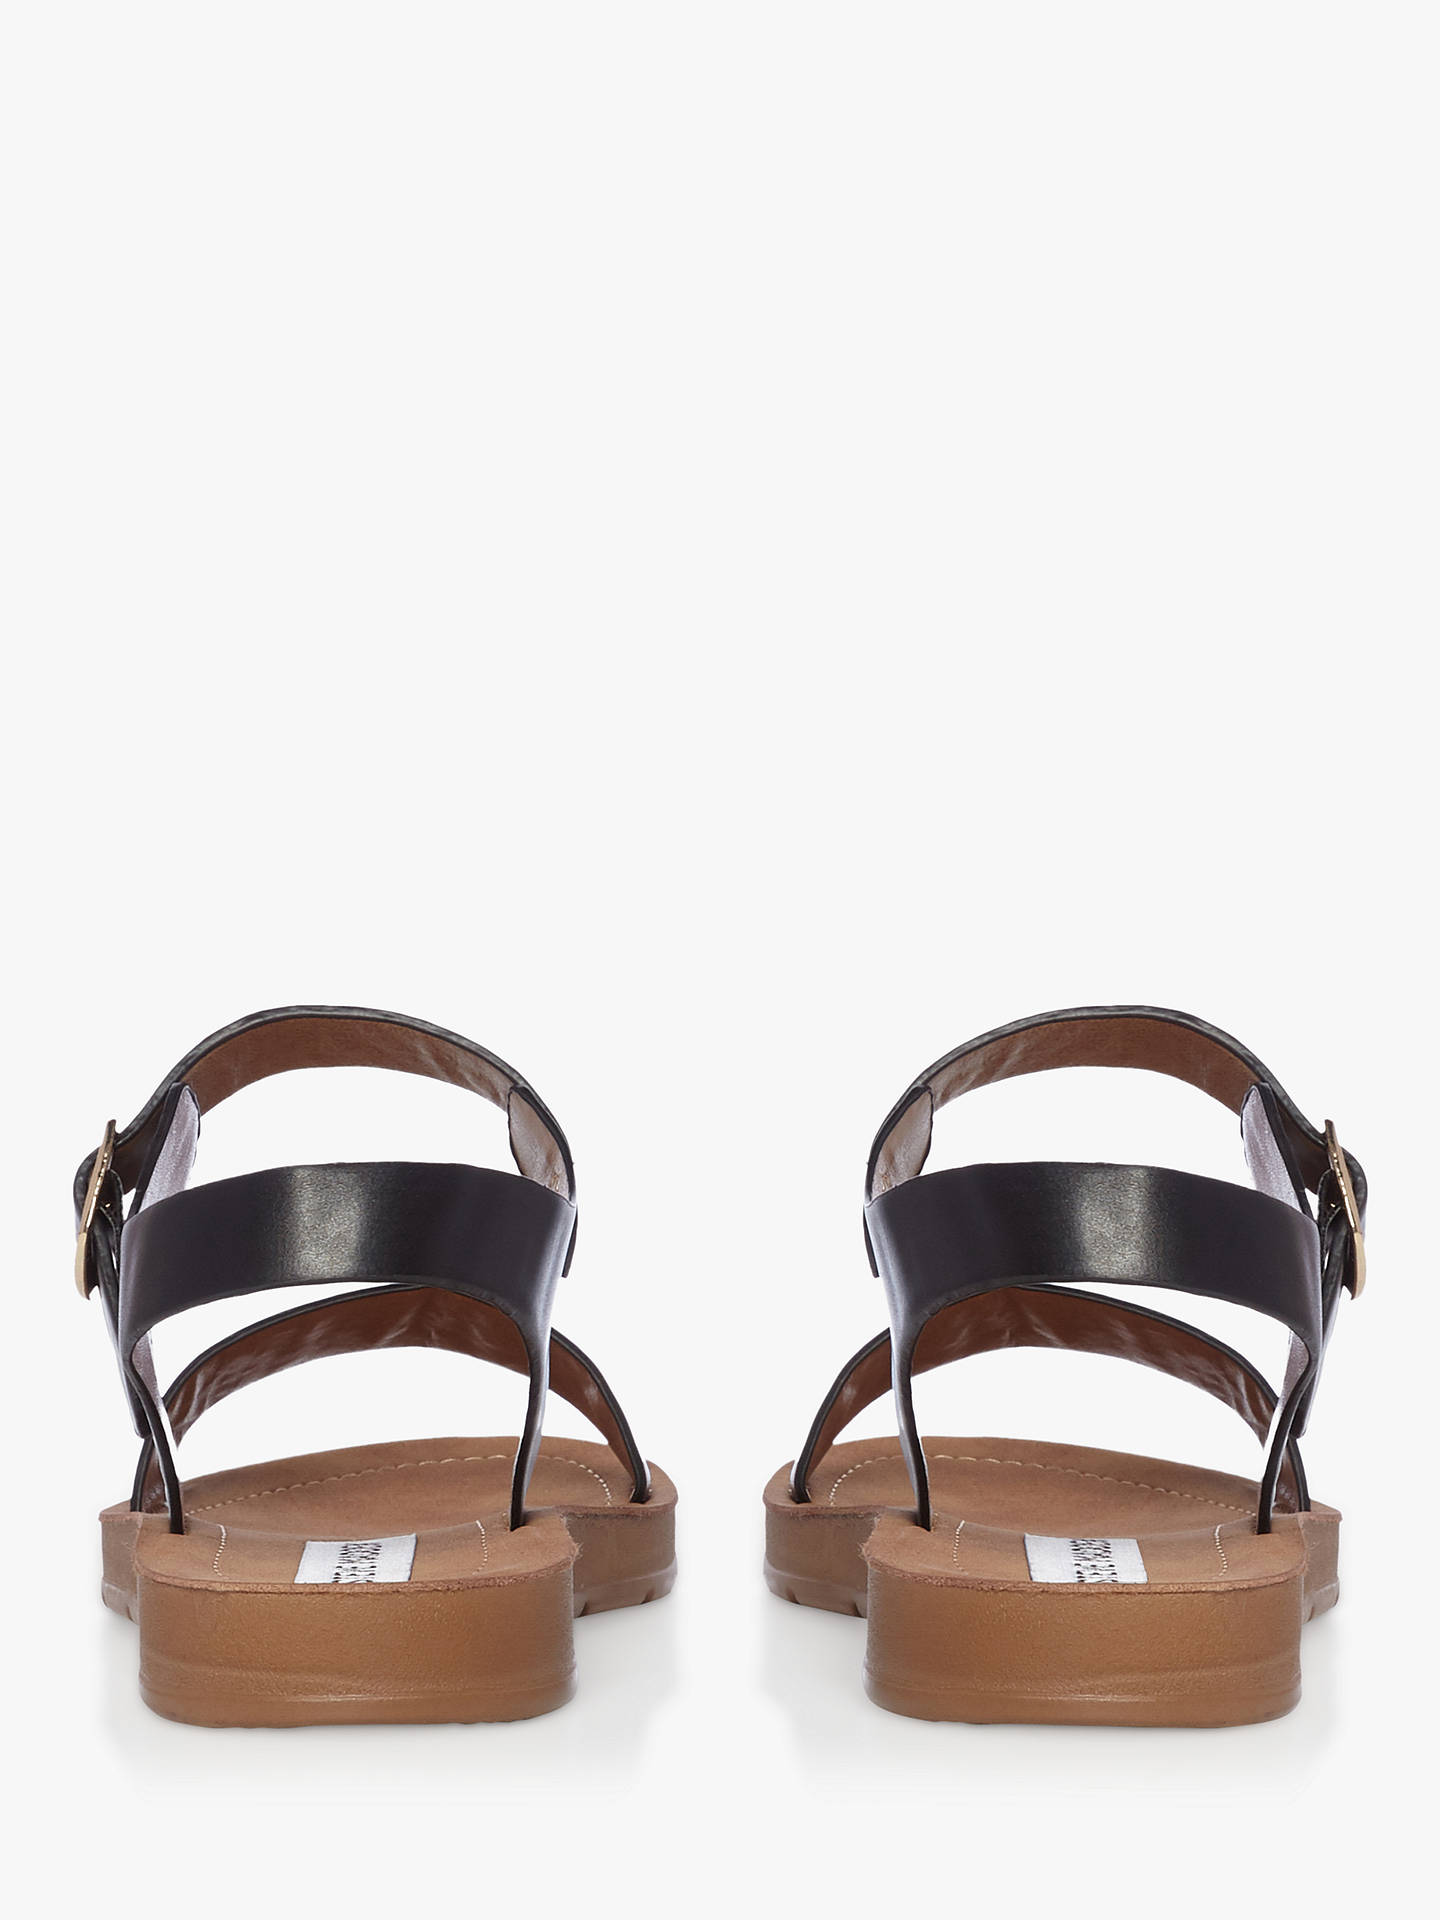 75f31391934 Steve Madden Probable Two Part Flat Sandals at John Lewis   Partners